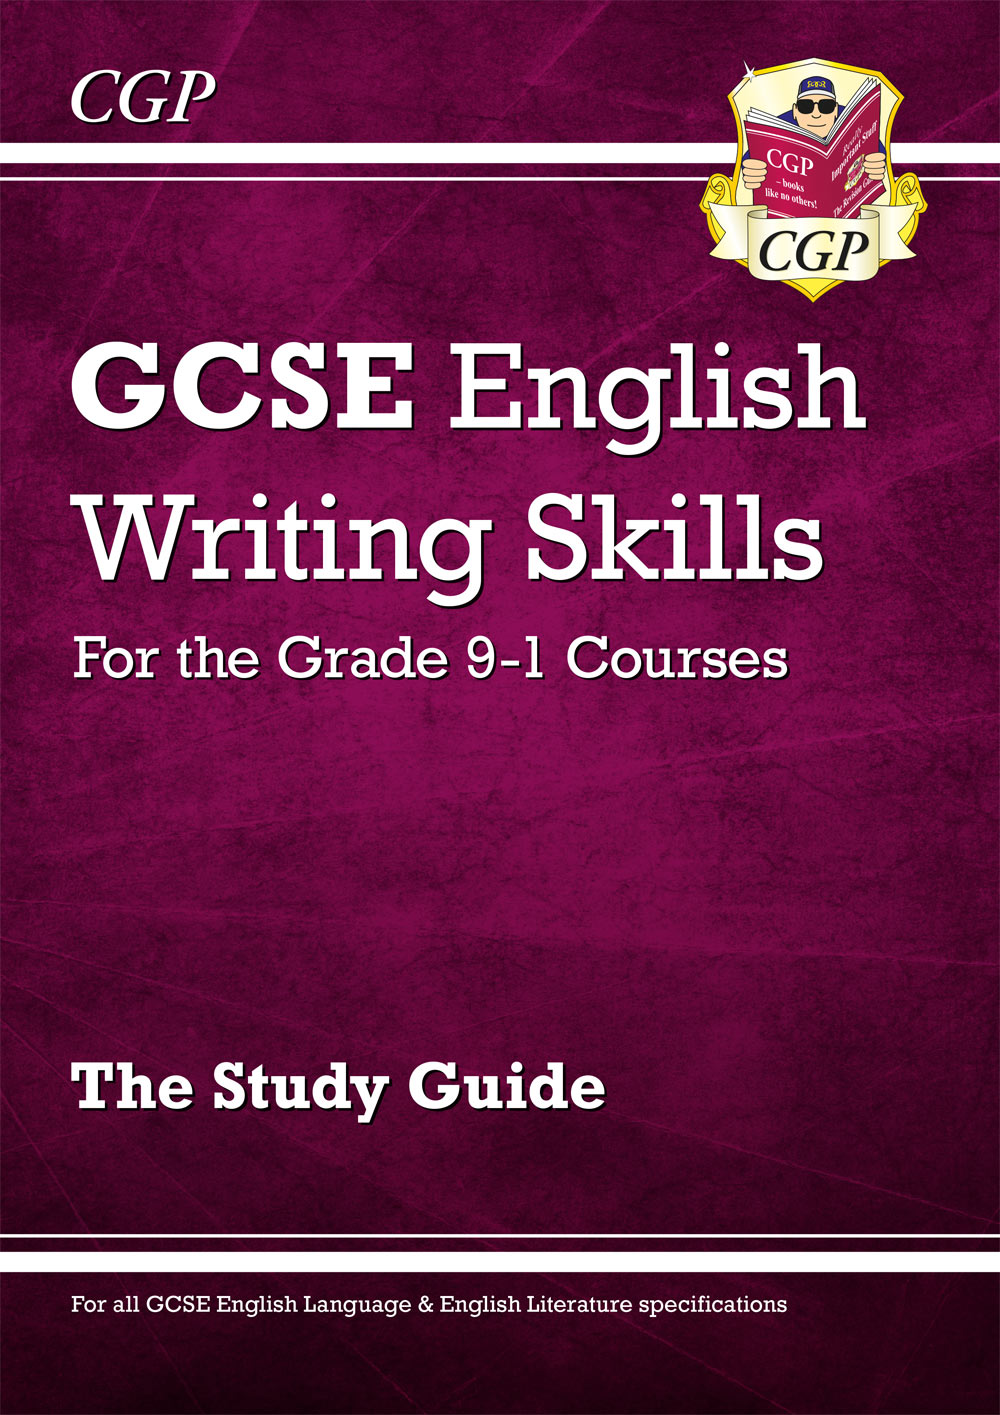 EER42 - GCSE English Writing Skills Study Guide - for the Grade 9-1 Courses